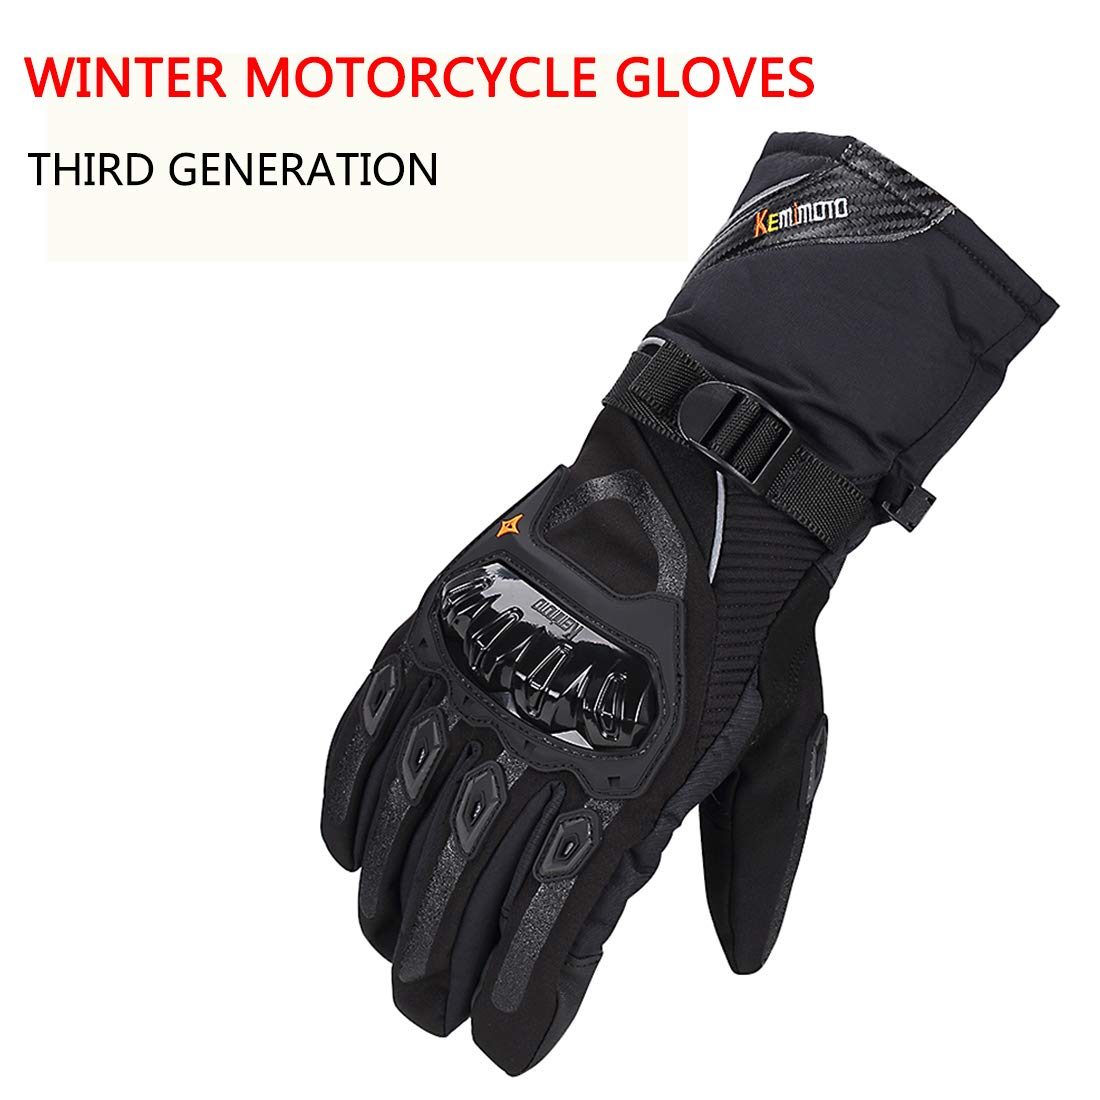 Kemimoto Motorcycle Gloves Winter Touchscreen Waterproof Riding Gloves Updated Version Four Layer Structure